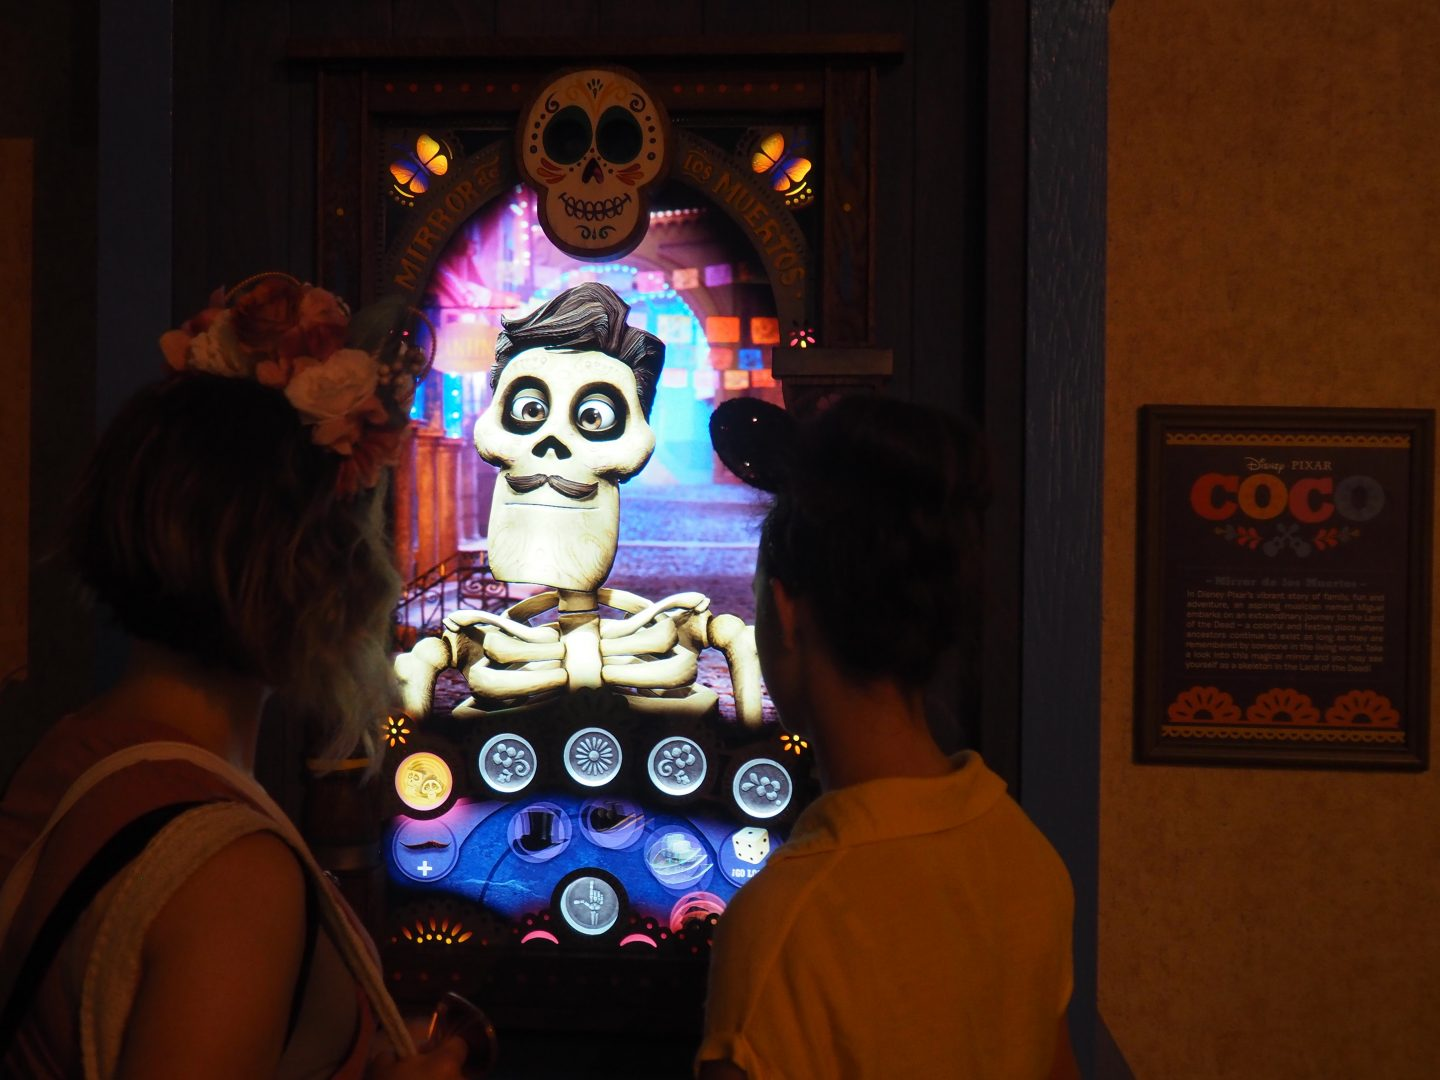 The Mirror de los Muertos at Epcot Mexico in Walt disney World, is a fun, free game at Disney. You dress up your skeleton, dance and get a picture together on the screen. #disneyfreegames #freedisney #disneyepcot #coco #cocoatwaltdisneyworld